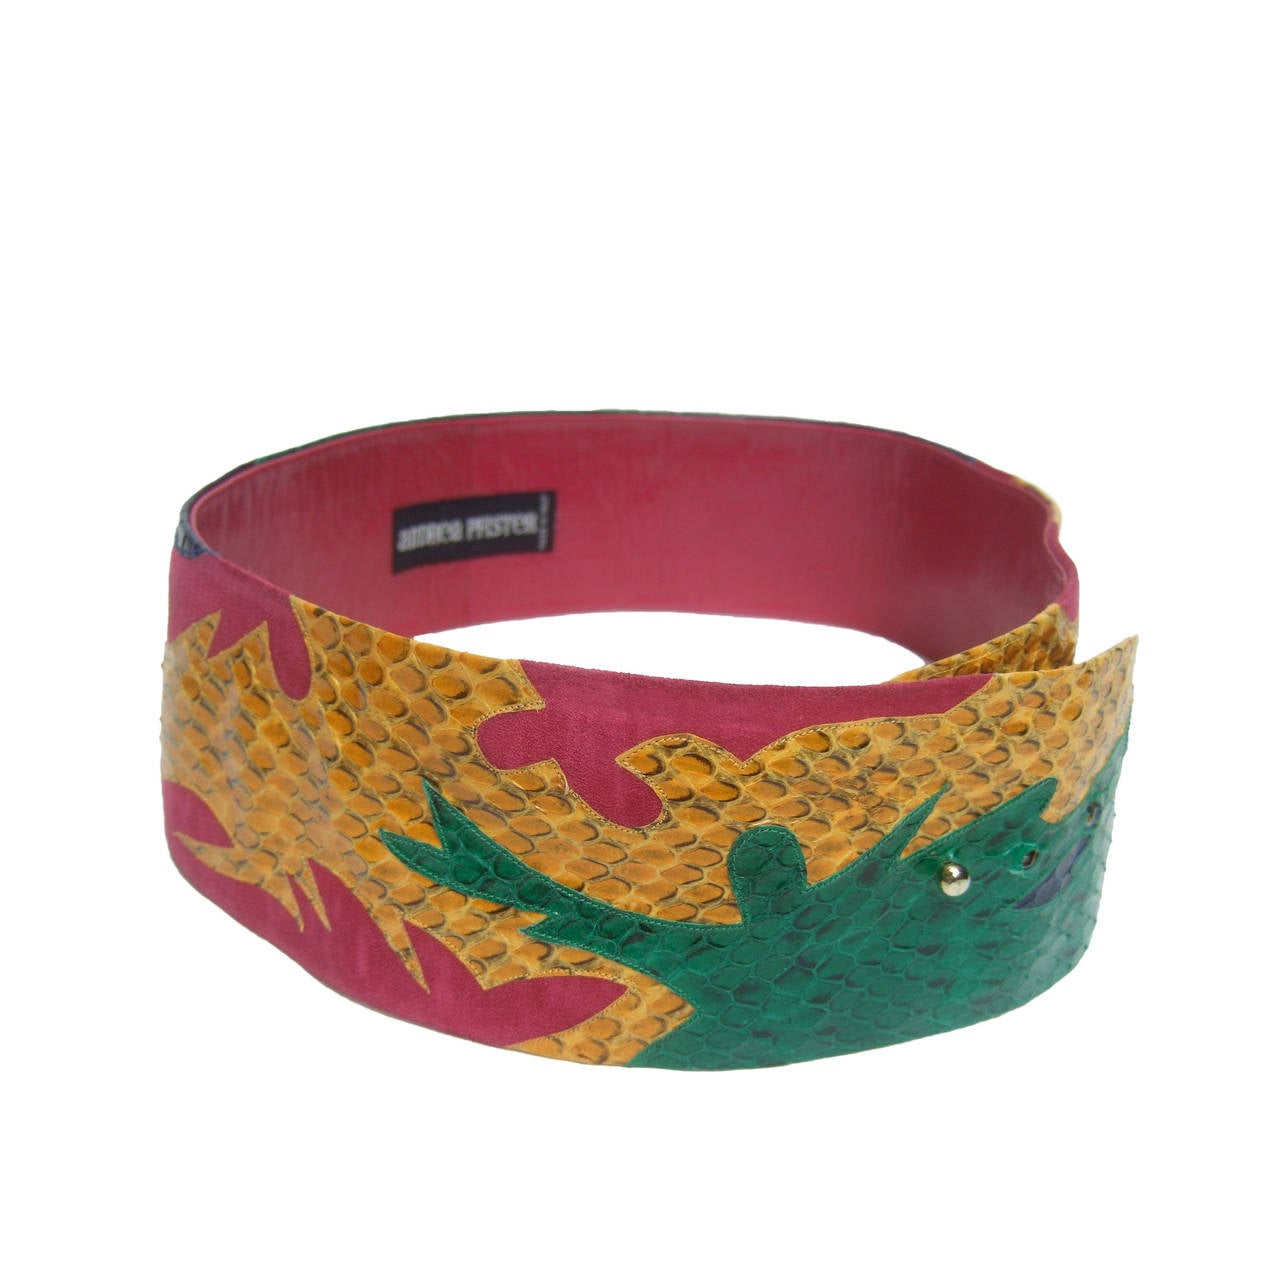 Exotic Italian Wide Snakeskin Fuchsia Suede Belt c 1980s For Sale